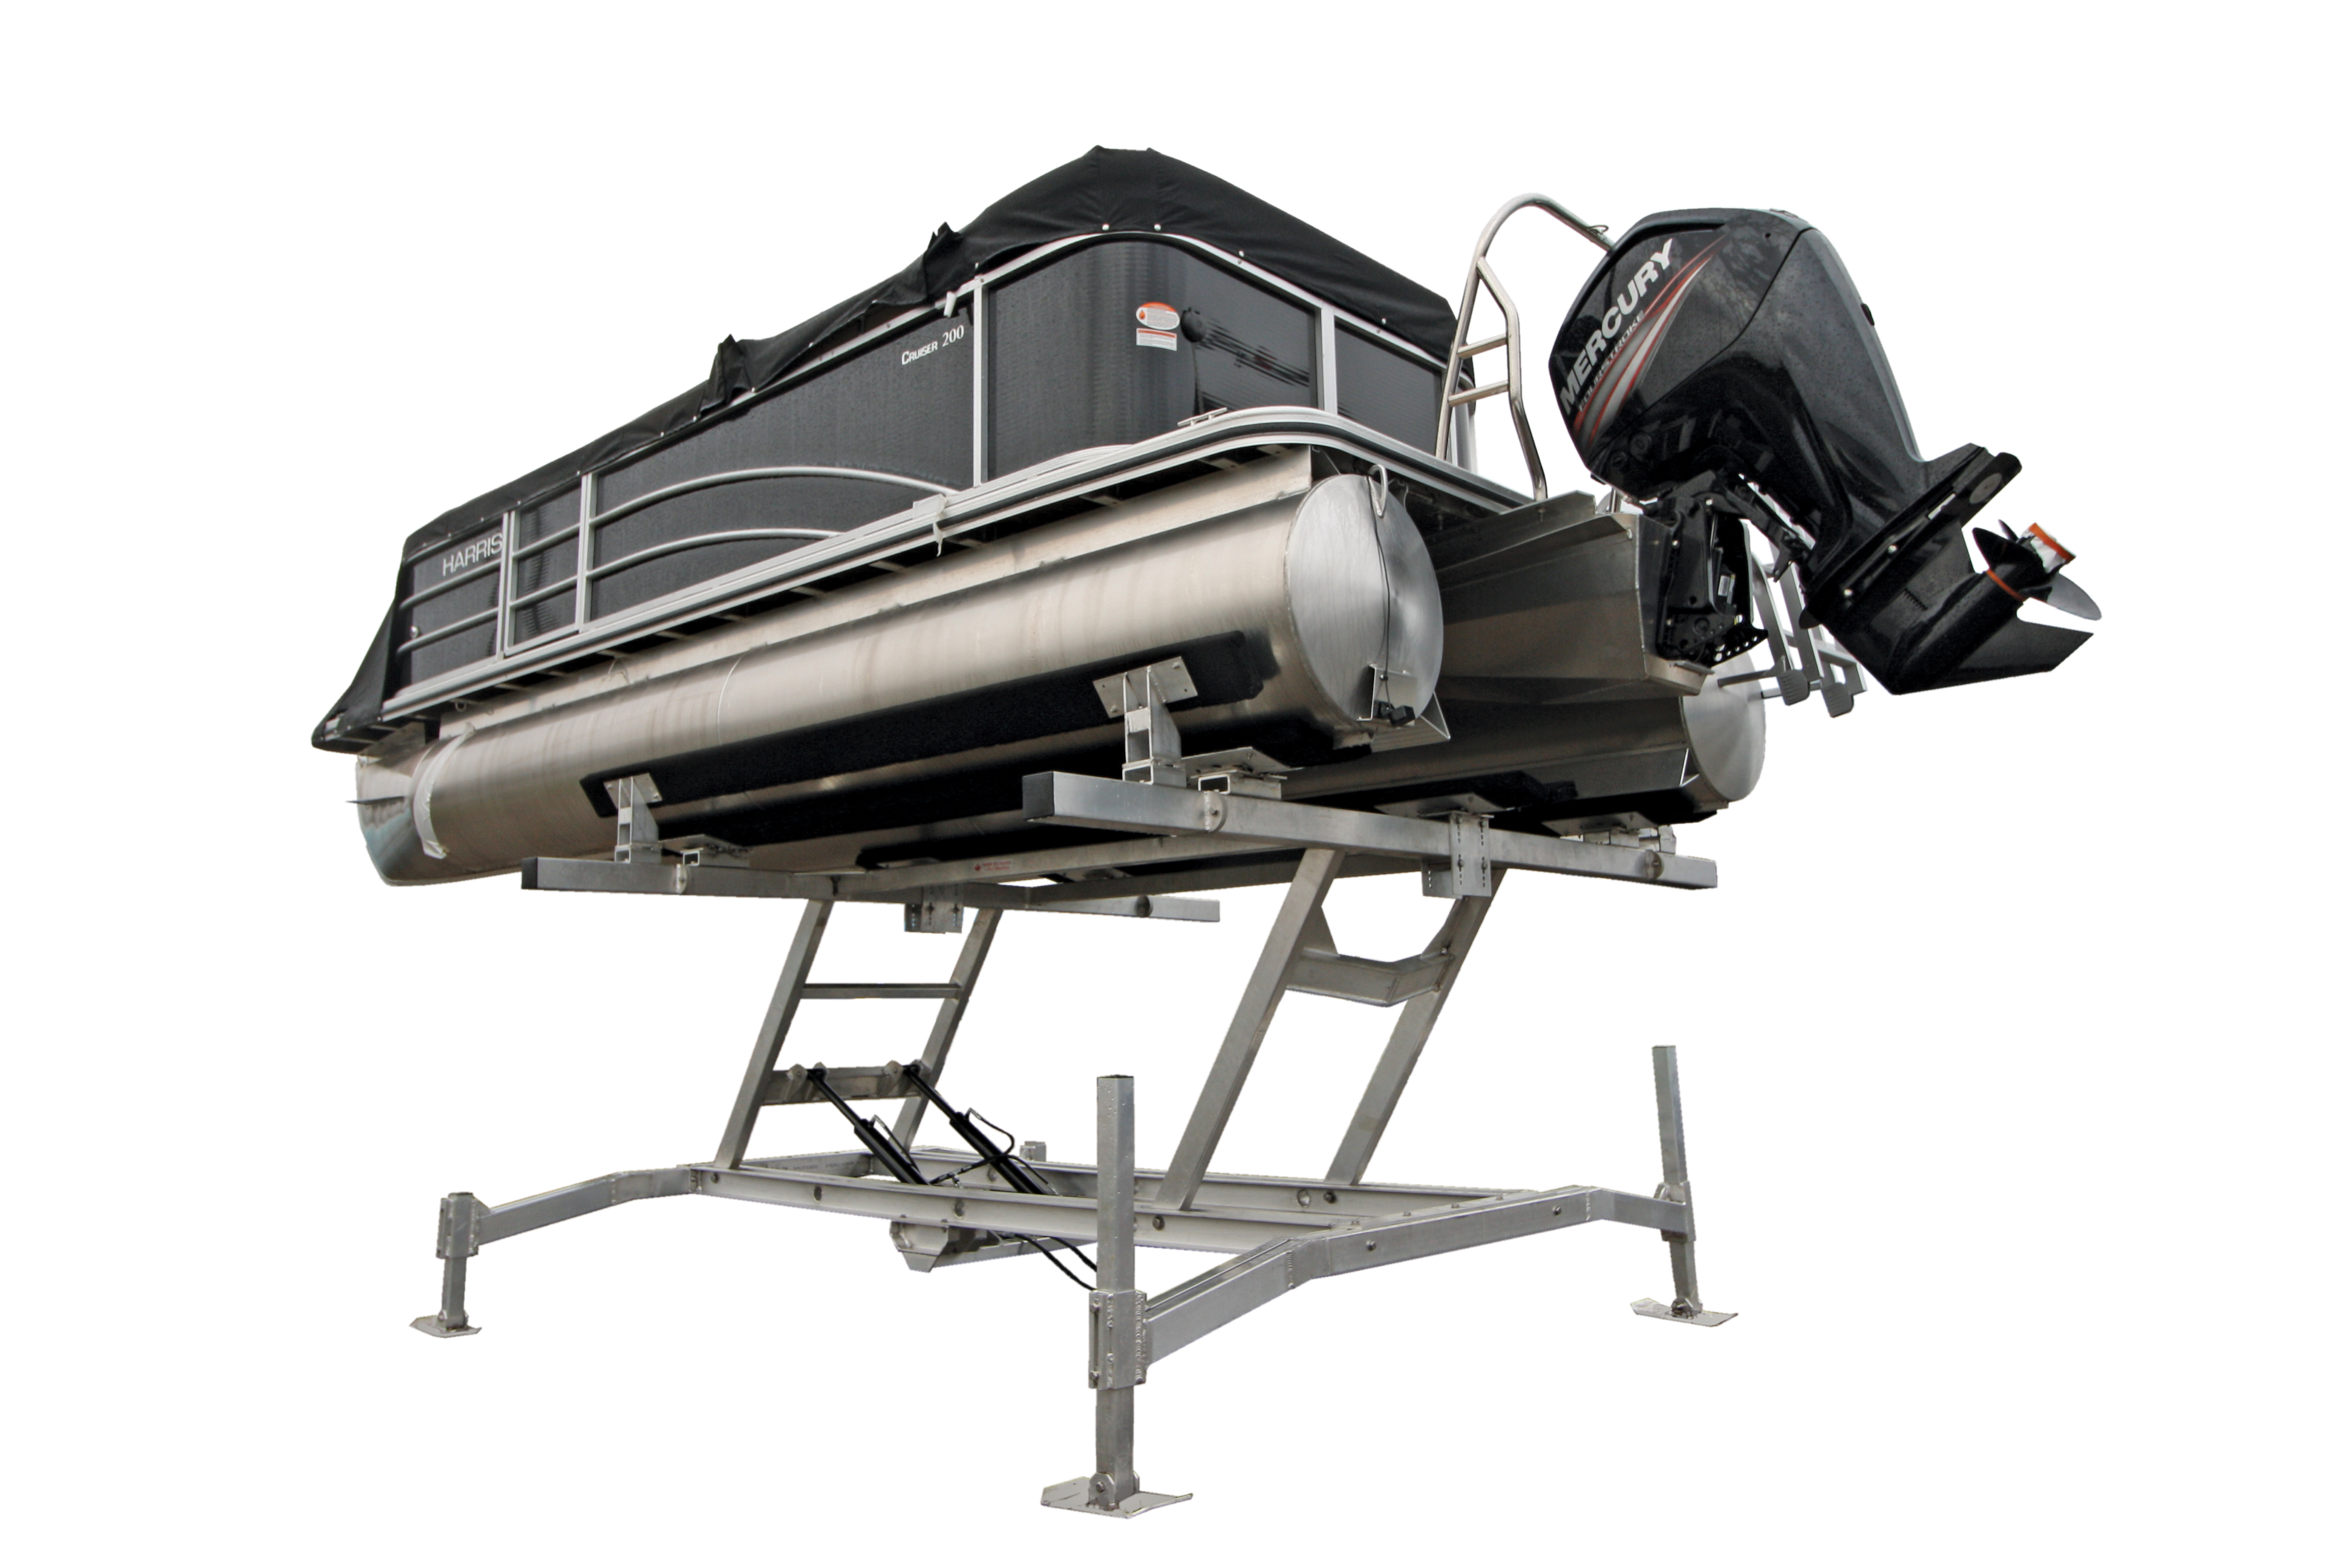 Hydraulic Boat Lifts Battery Powered Boat Lifts R J